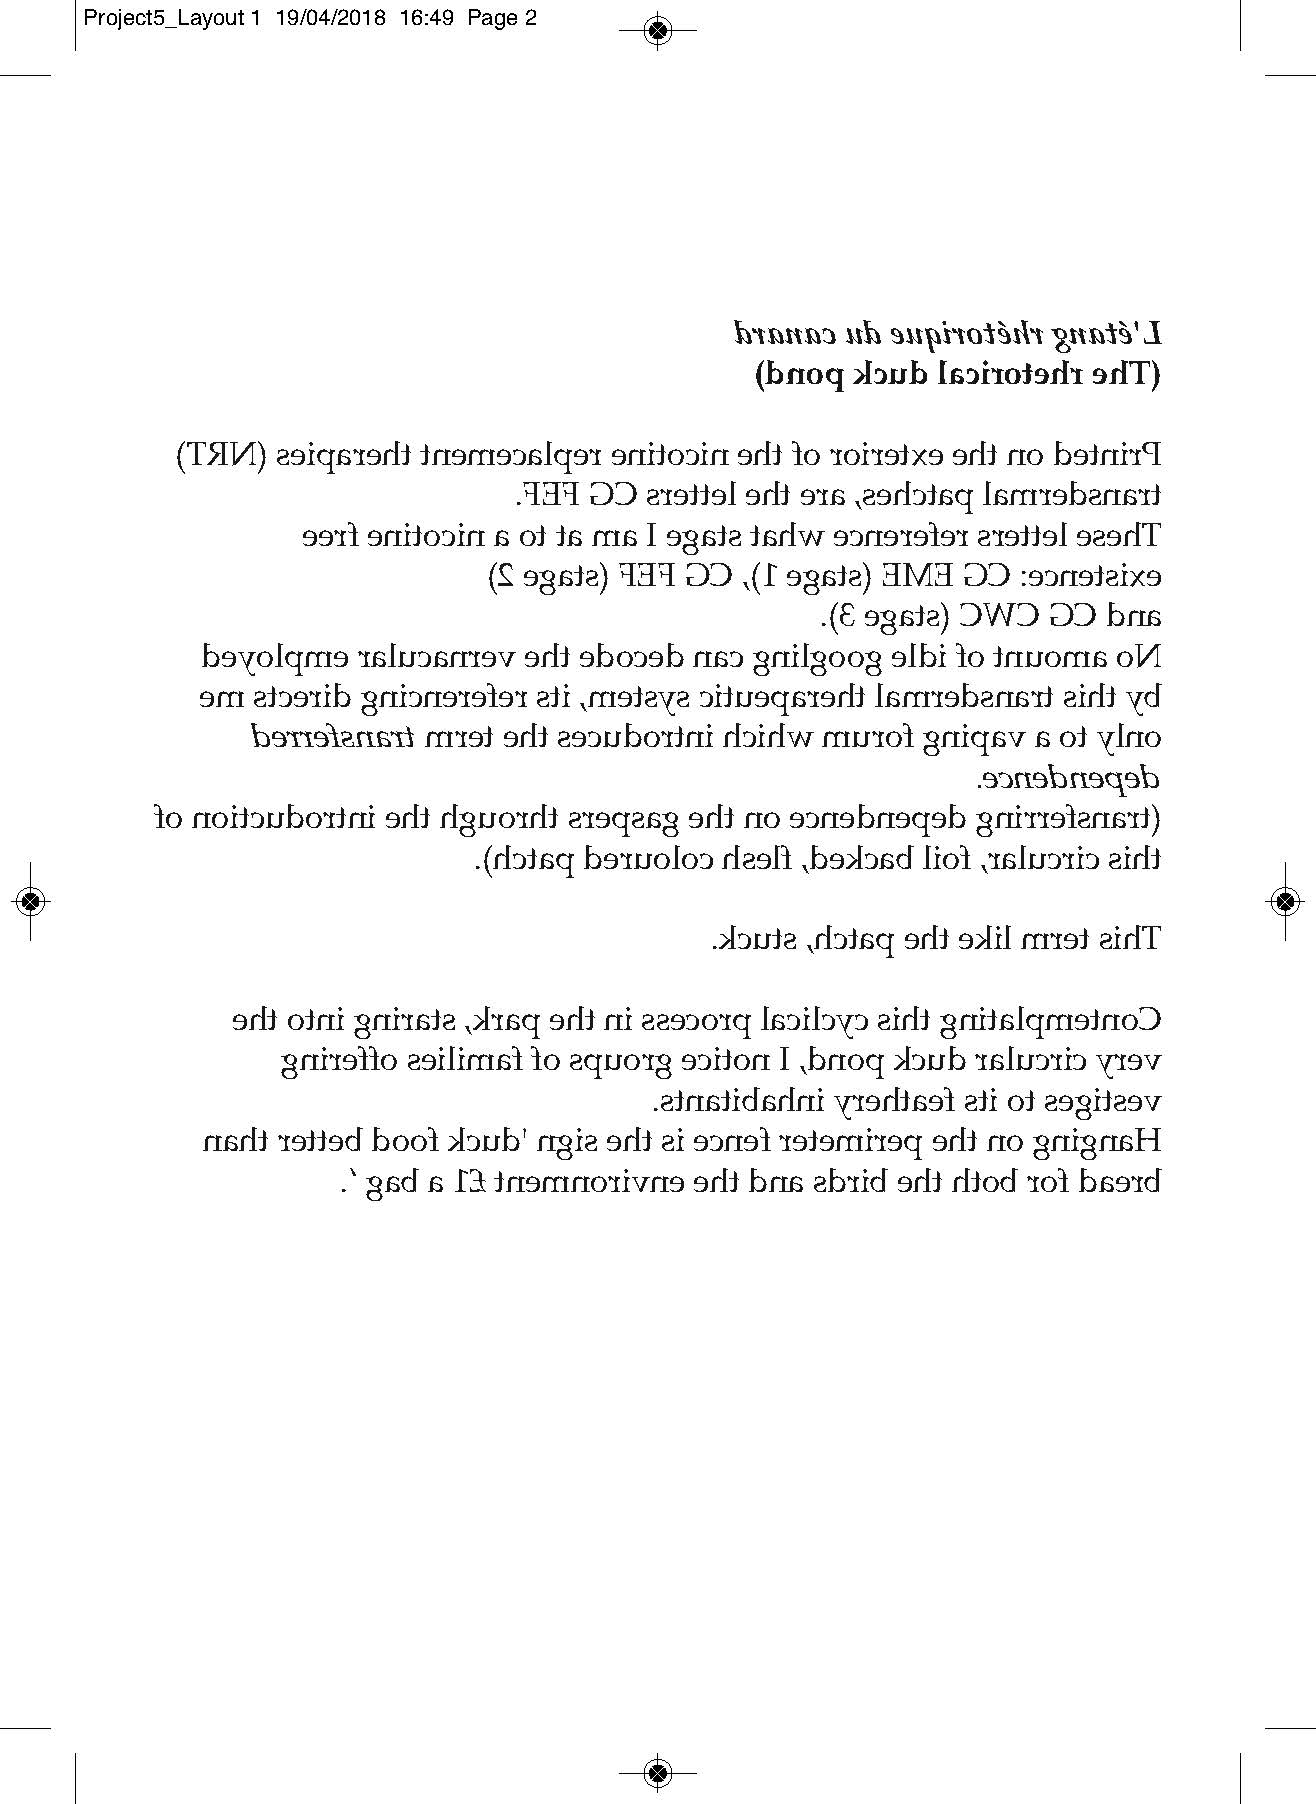 Mirror text_Page_2.jpg